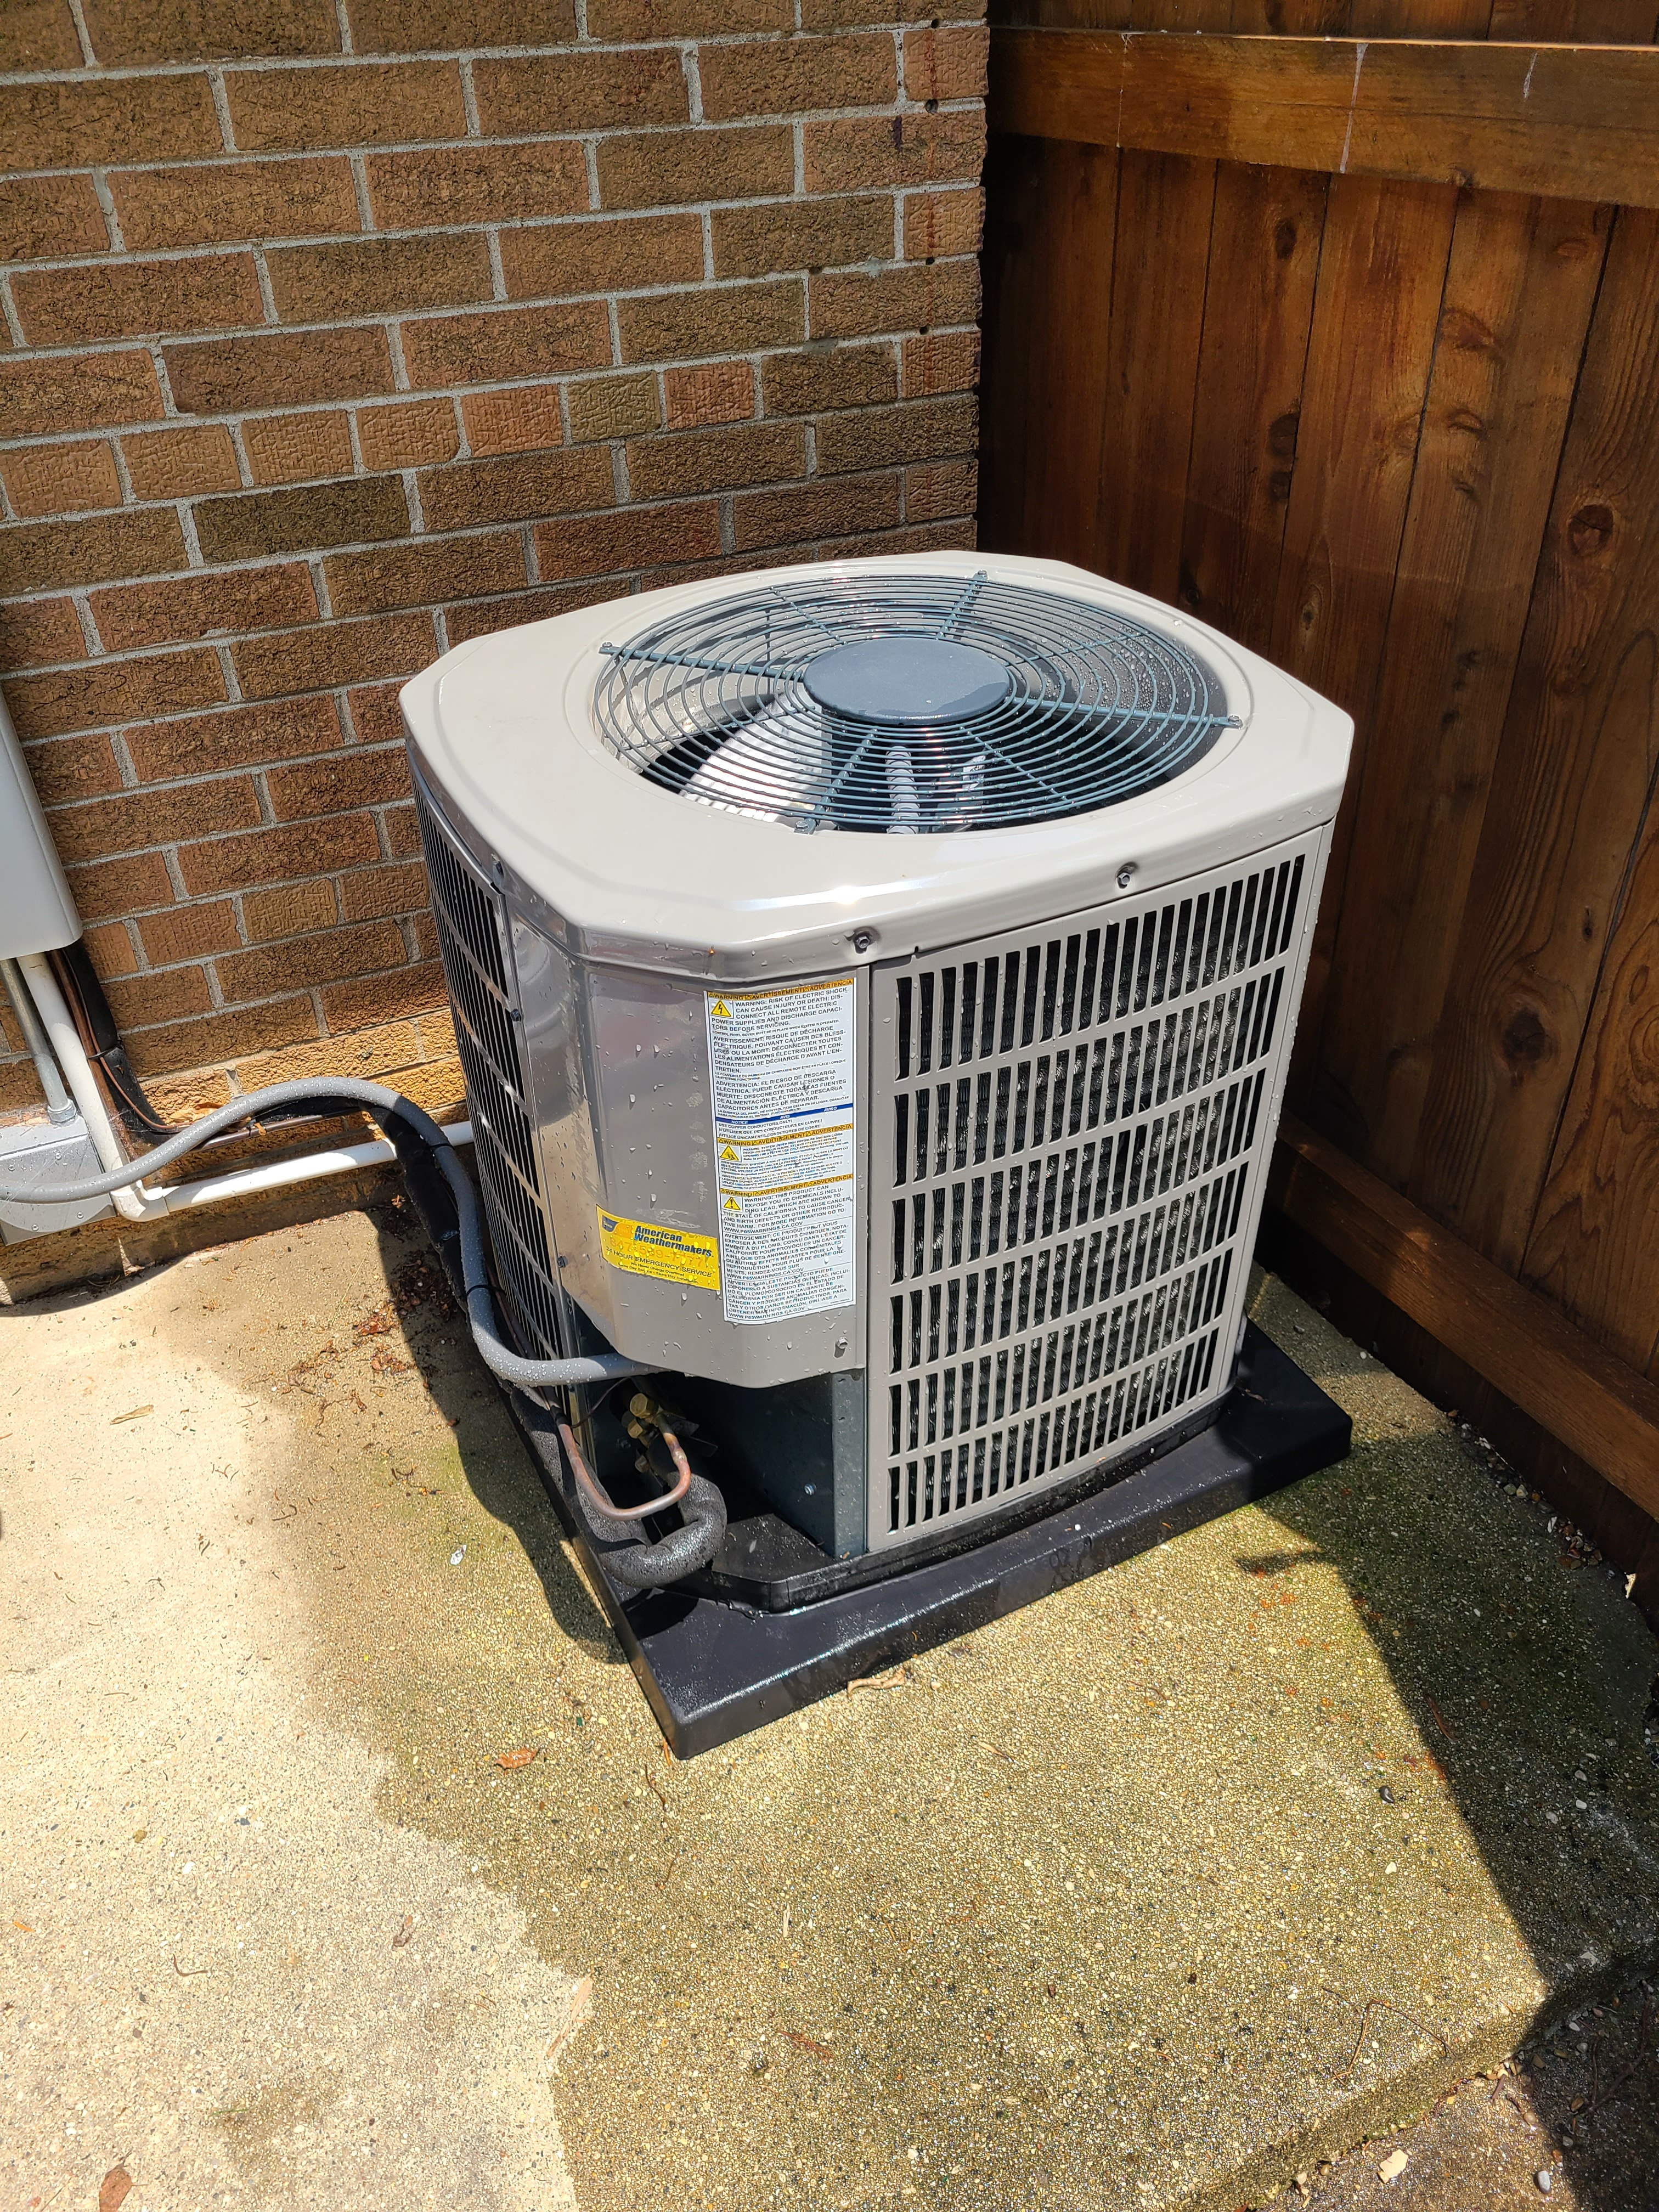 American Standard ac maintenance and repair. System cleaned and checked and ready for summer.